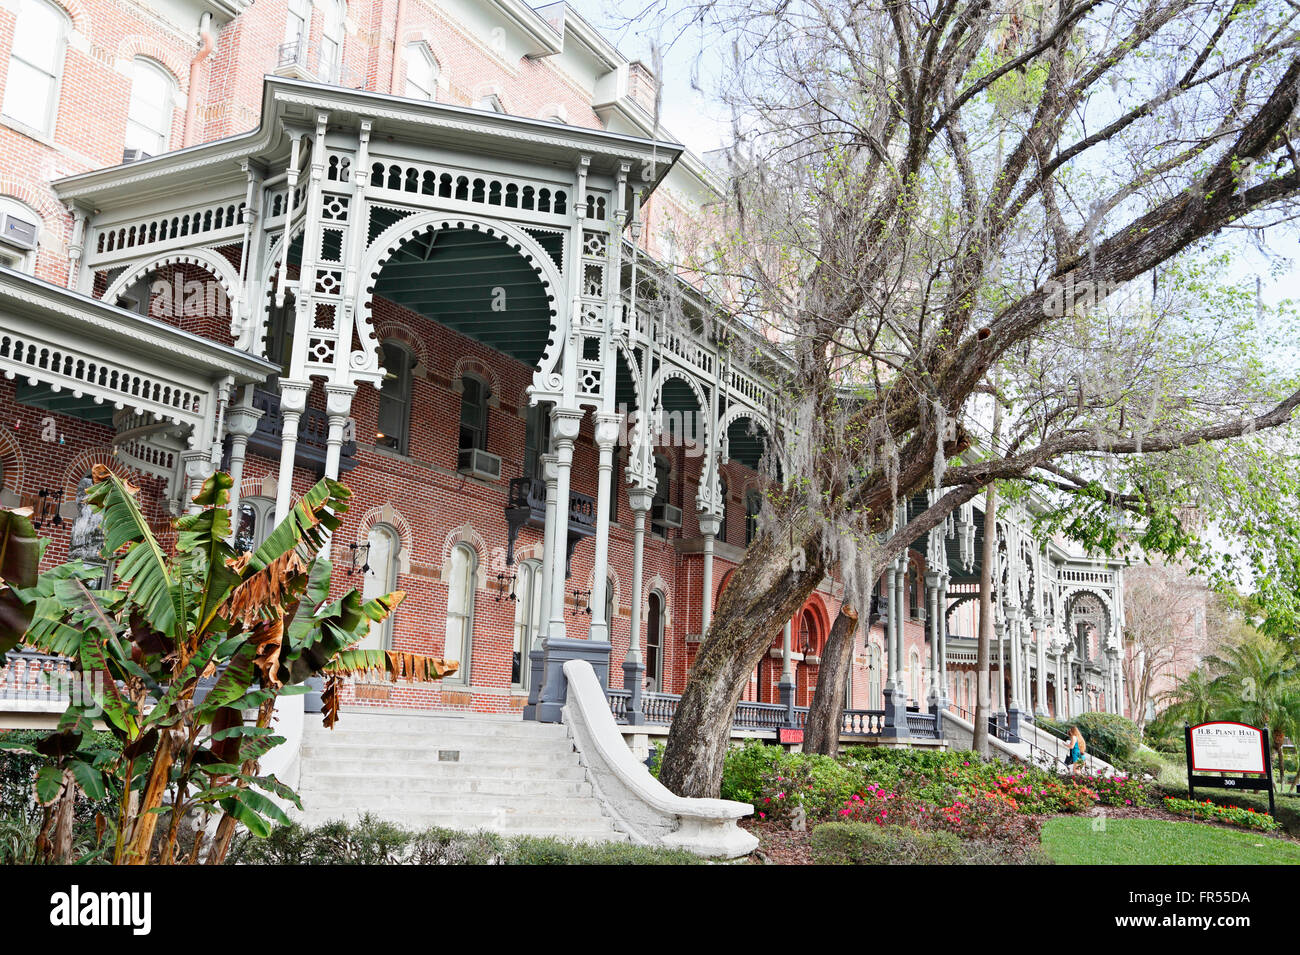 University of Tampa, Florida,in the resort old Tampa Bay Hotel. Henry B. Plant Hall. - Stock Image